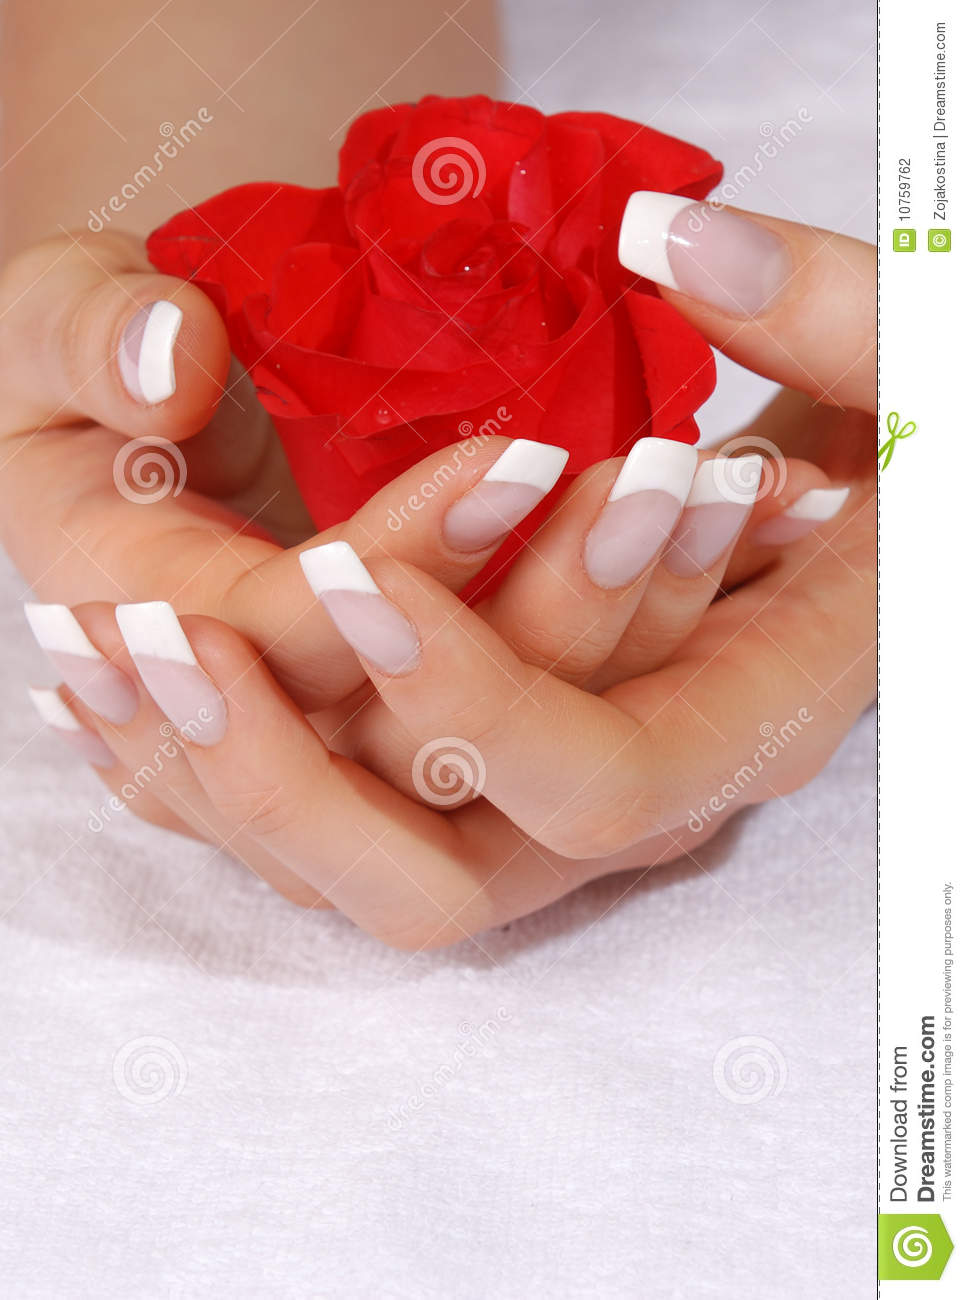 French manicure and scarlet rose